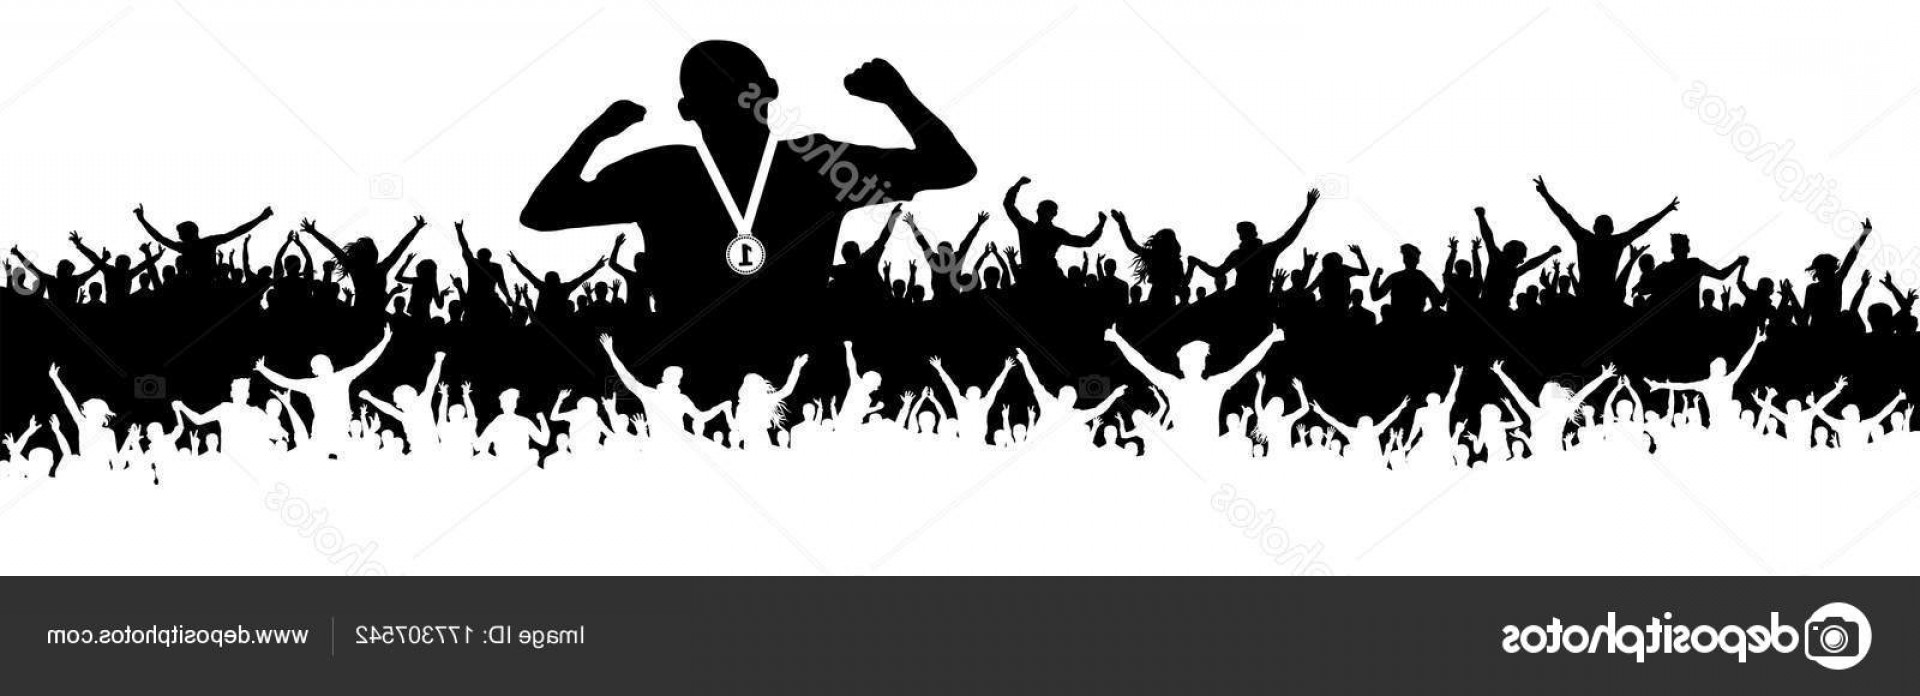 Vector Sports Crowd Cheering: Stock Illustration Sports Man Victory Silhouette Crowd